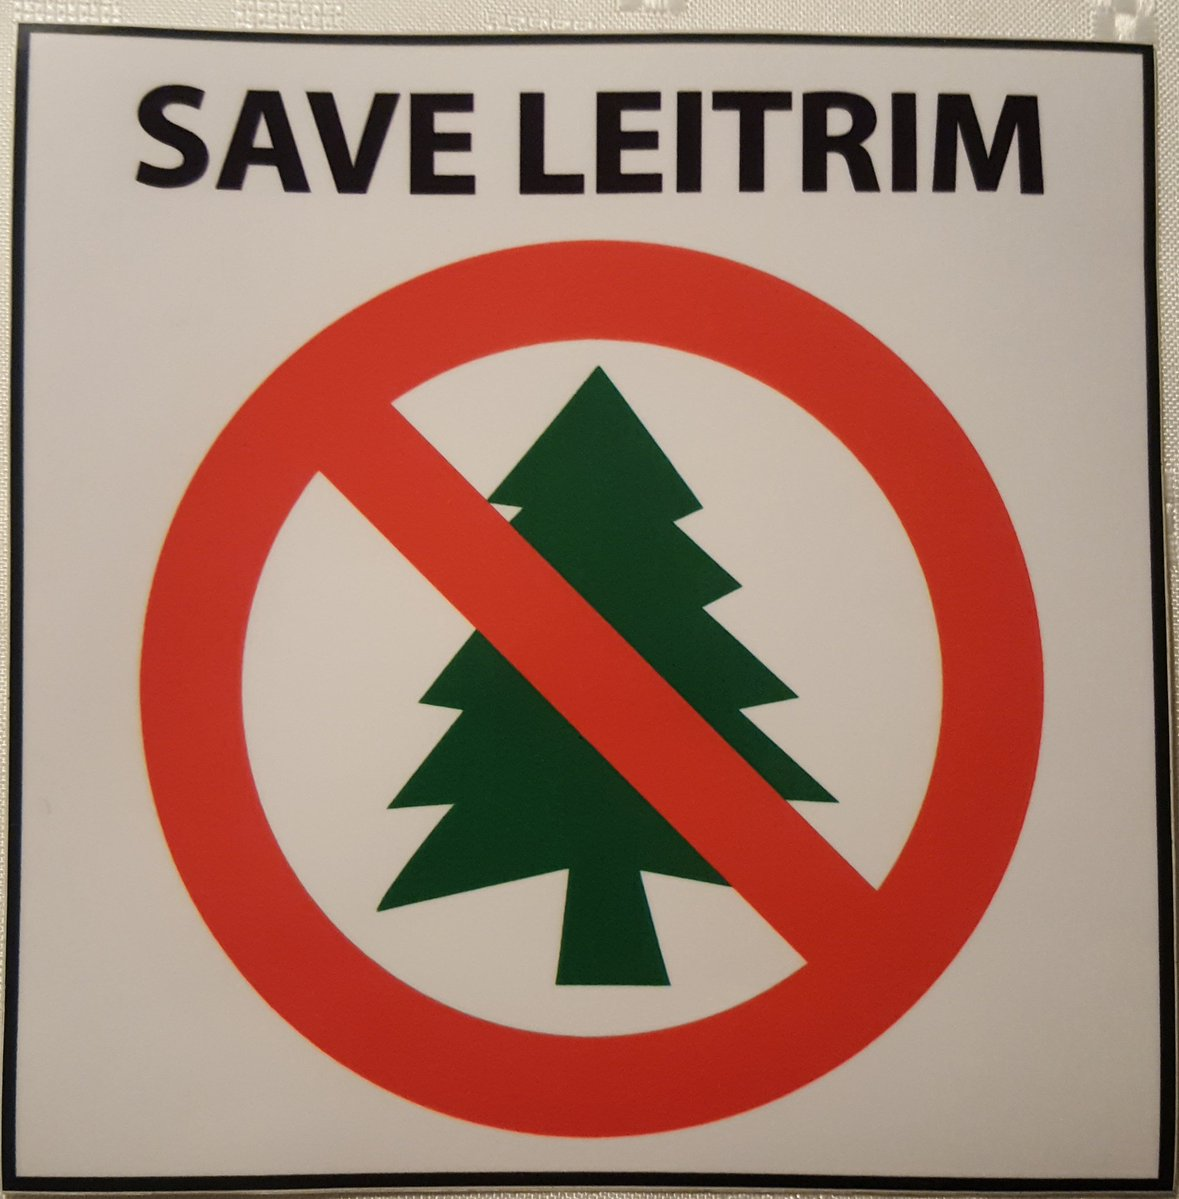 Save Leitrim from trees?